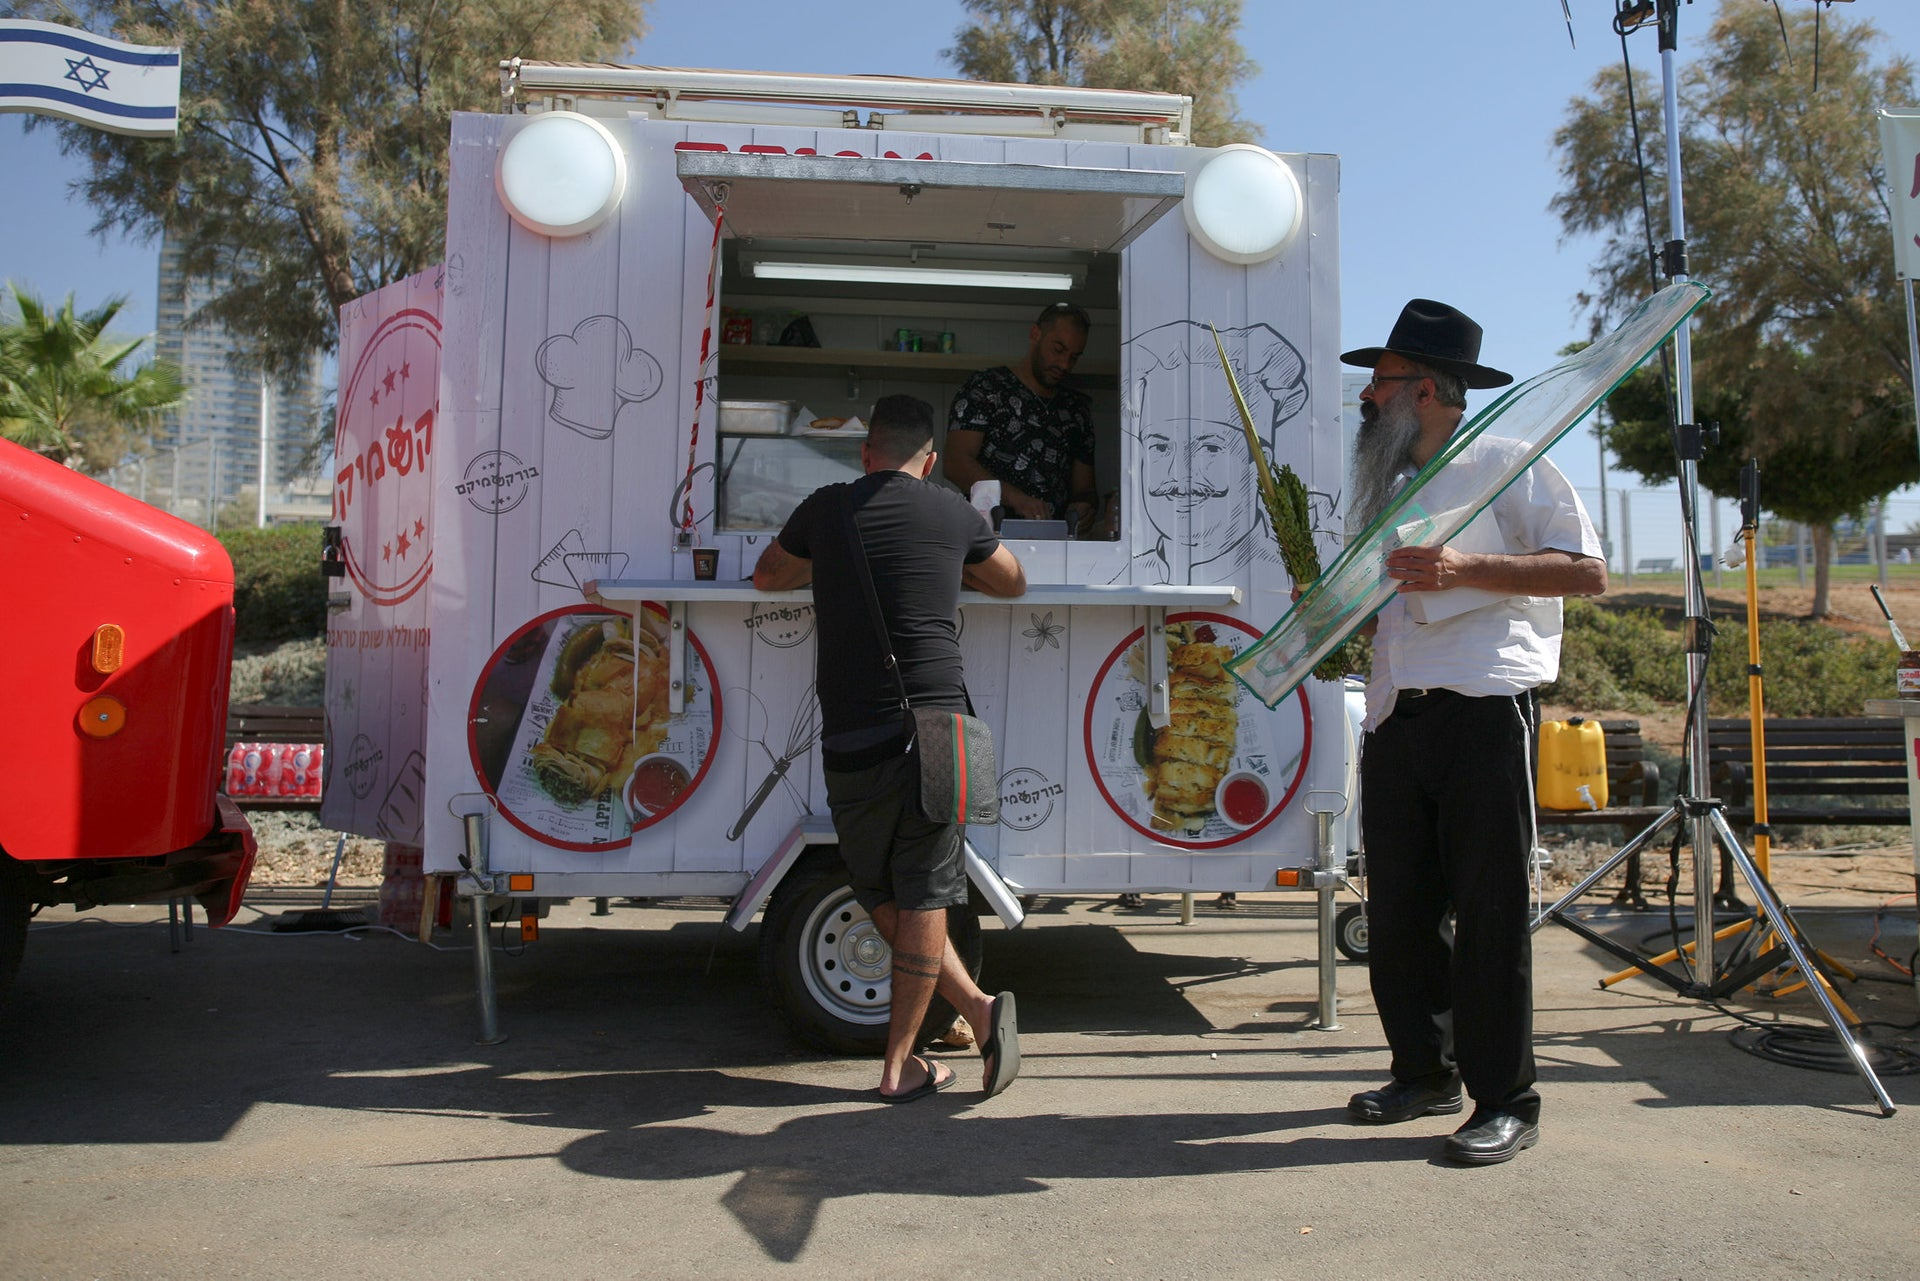 One of the food trucks in Ashdod during the Sukkot holiday.